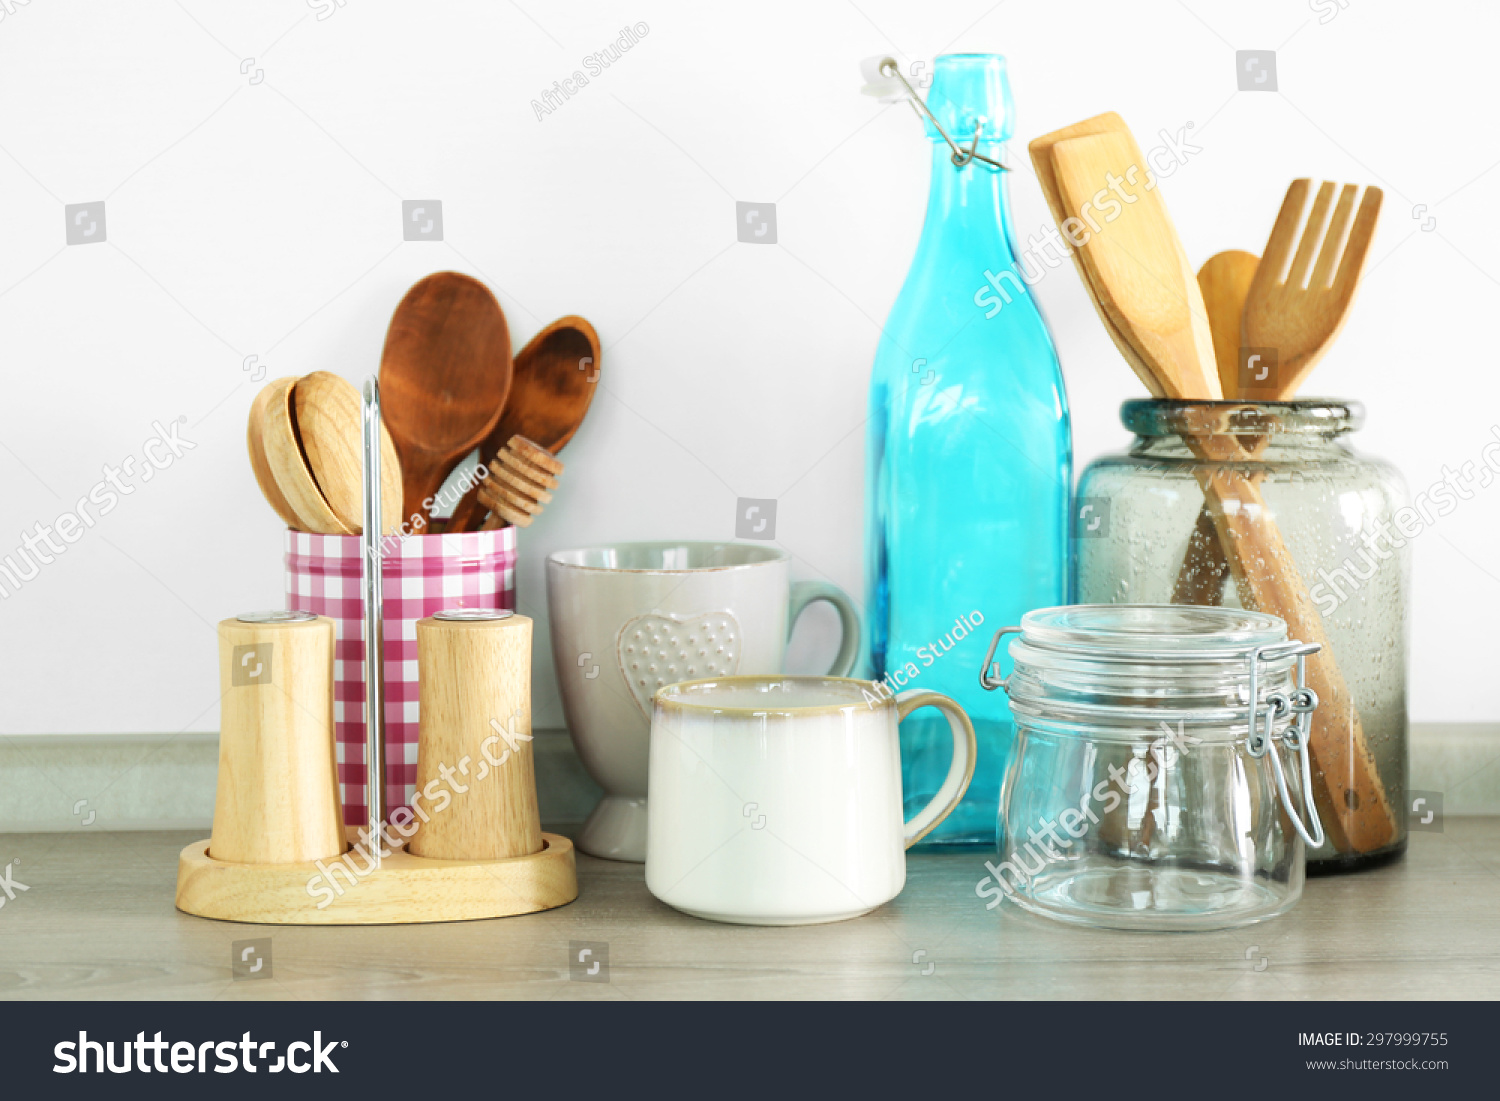 Composition with different utensils on wooden wooden table in ...